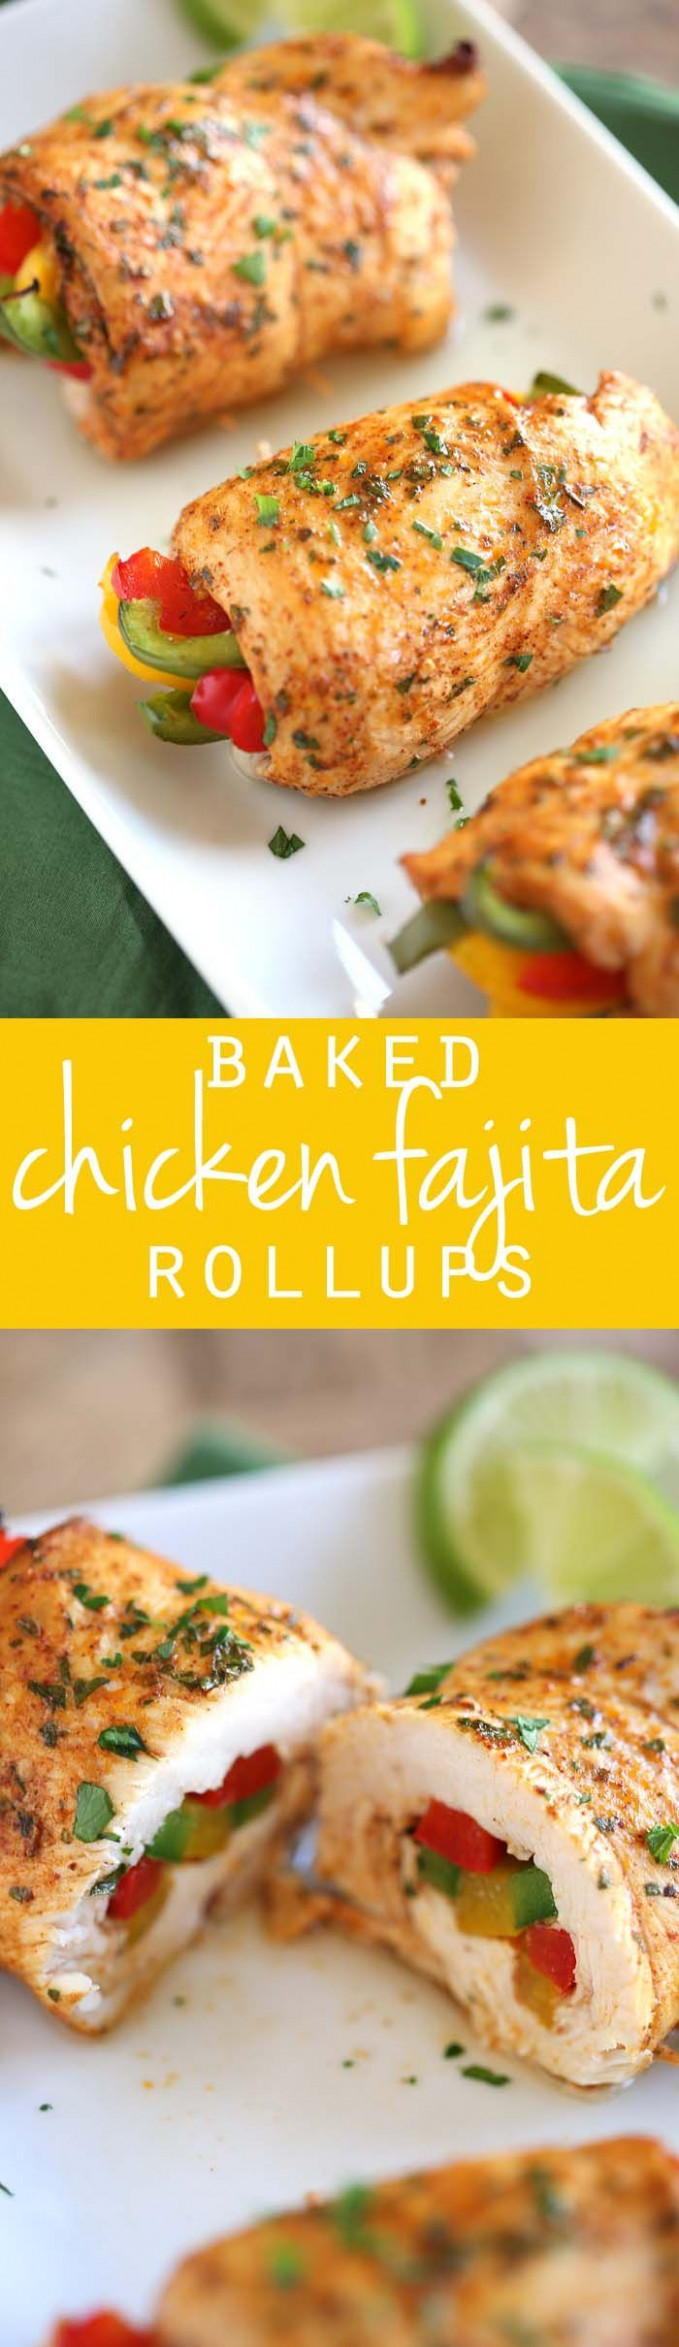 25+ Best Ideas about Healthy Chicken Recipes on Pinterest ...